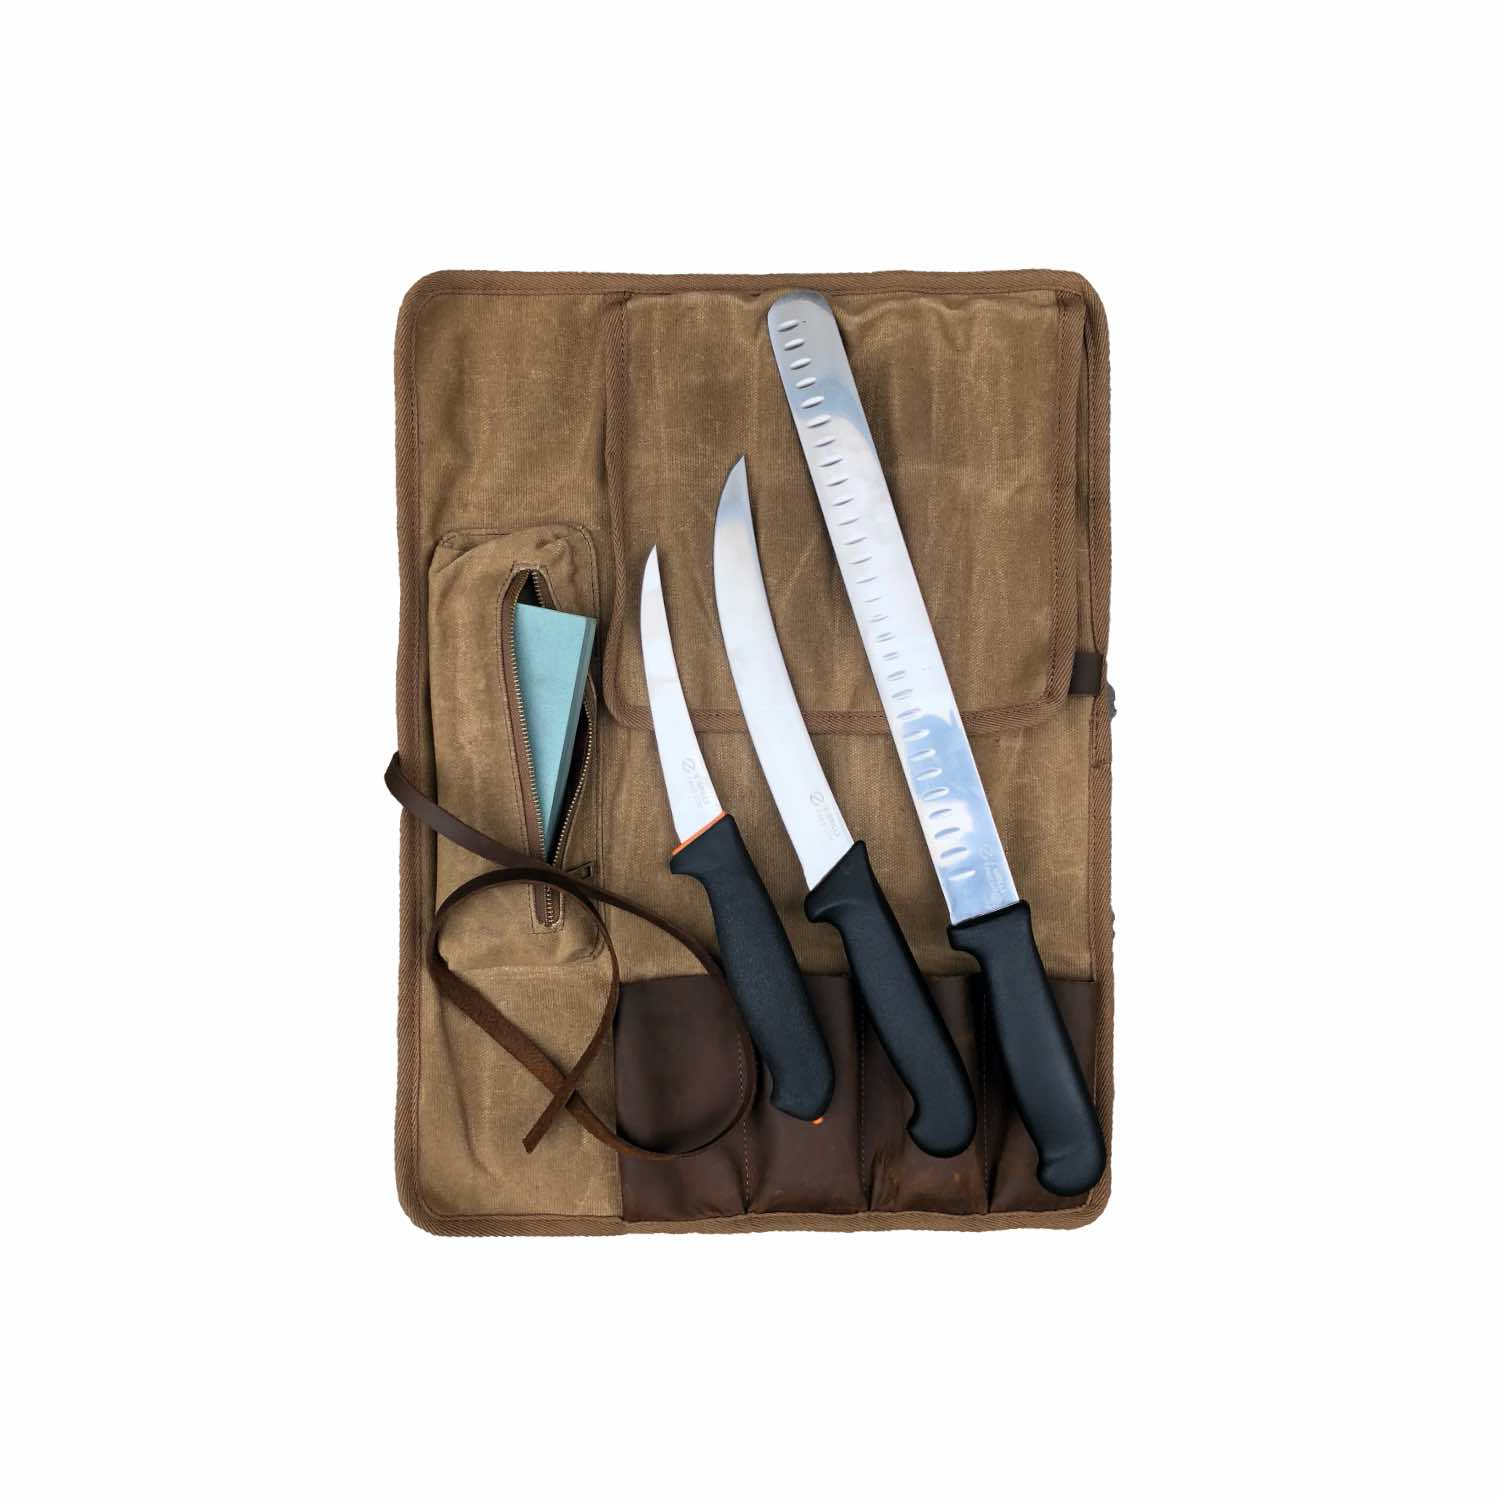 Z Grills BBQ knife waxed canvas pouch bundle